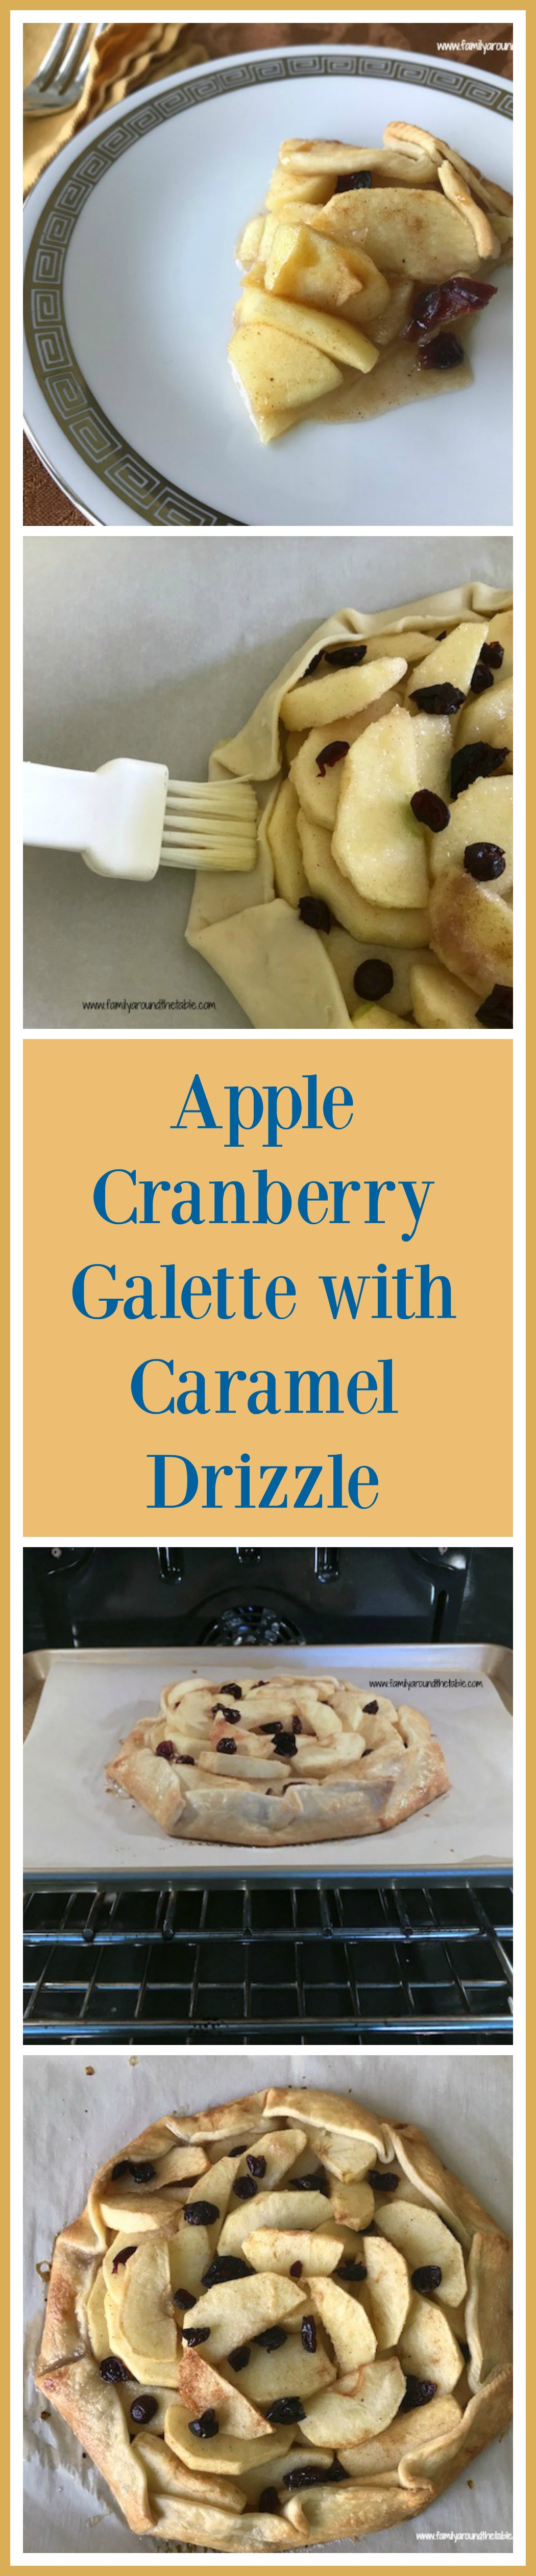 Apple Cranberry Galette with Caramel Drizzle is an impressive, yet easy dessert.